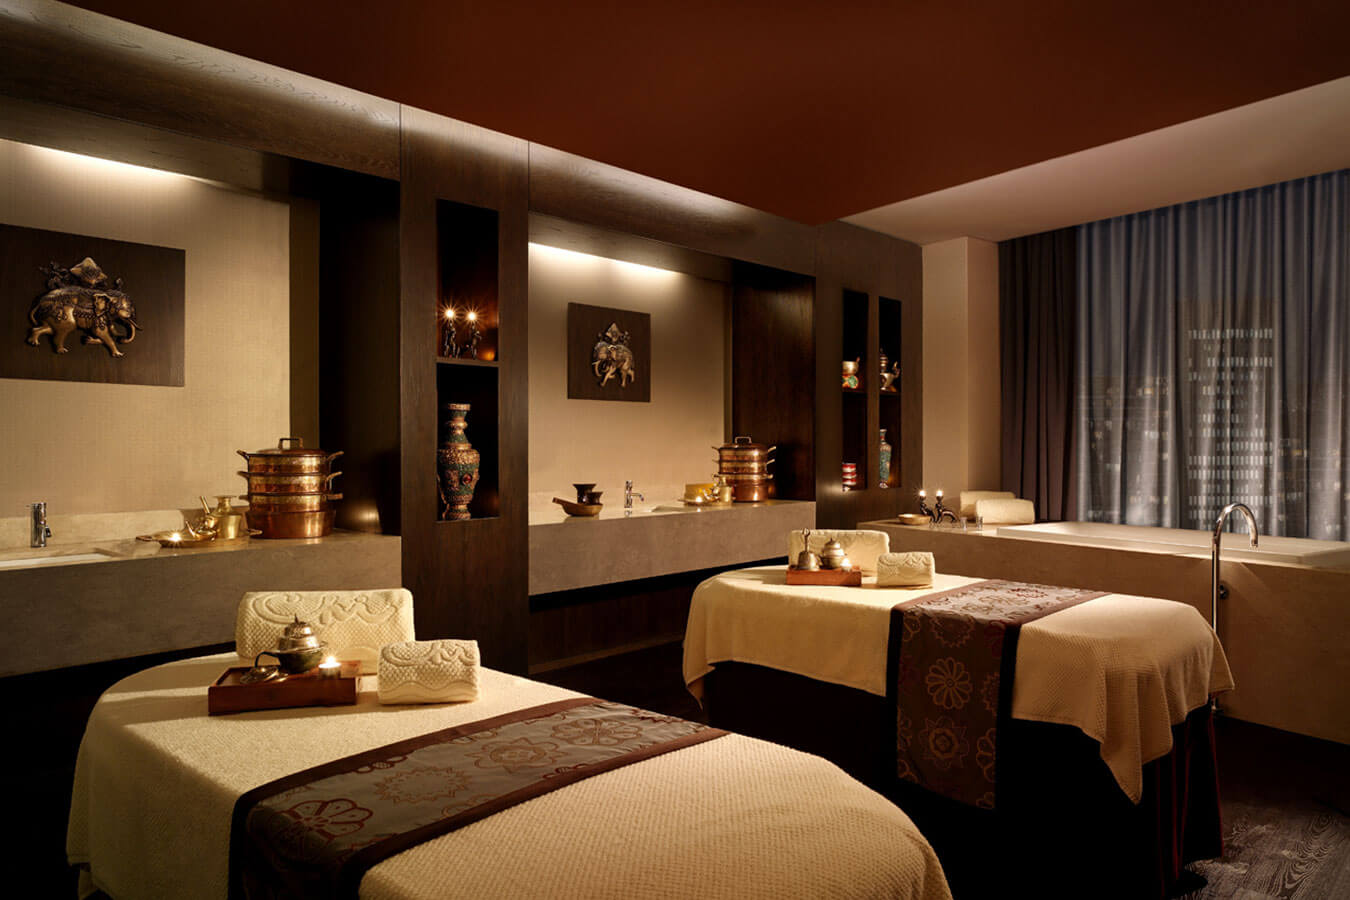 #9 Chi, The Spa At The Shangri-La | Spas In Bangkok | Image Source: the-spa-spy.com